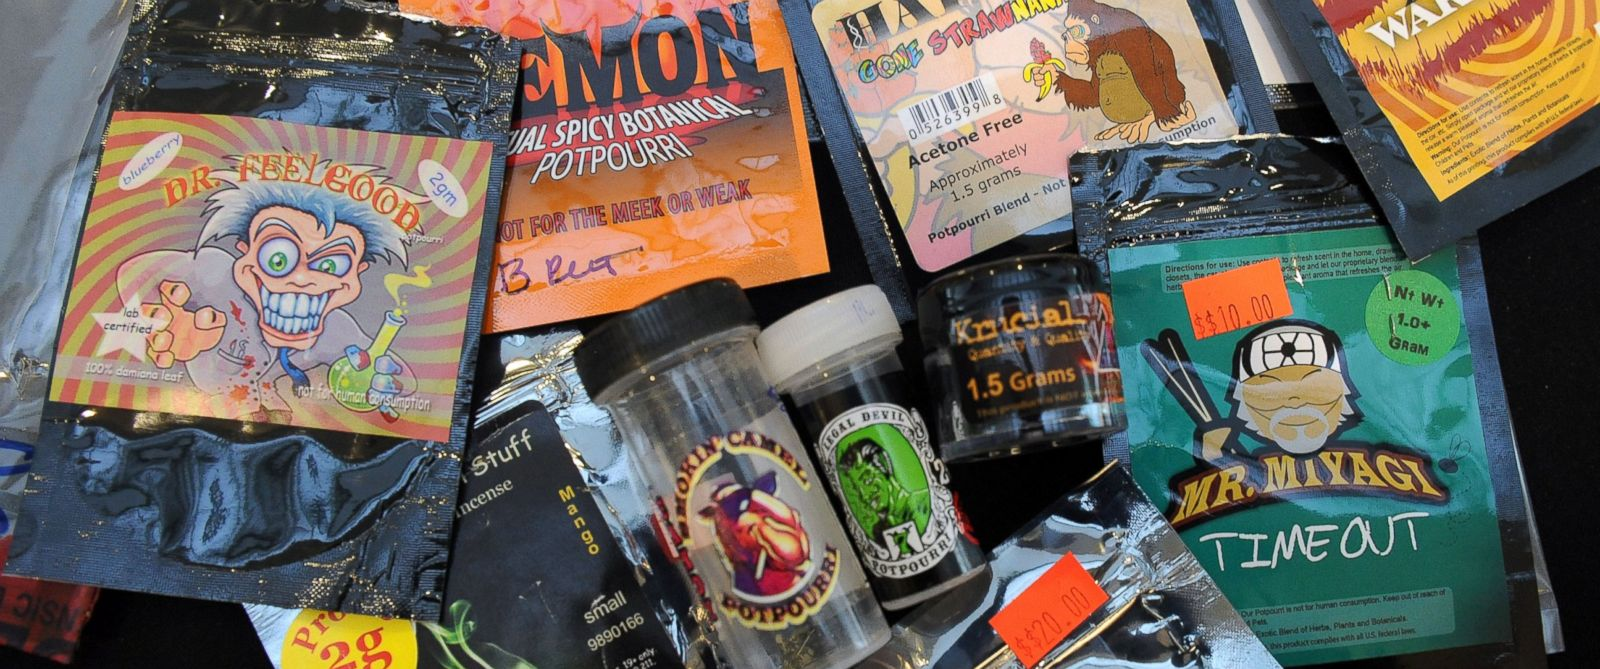 PHOTO: This June 1, 2012 file photo shows a variety of synthetic designer drugs including synthetic marijuana.